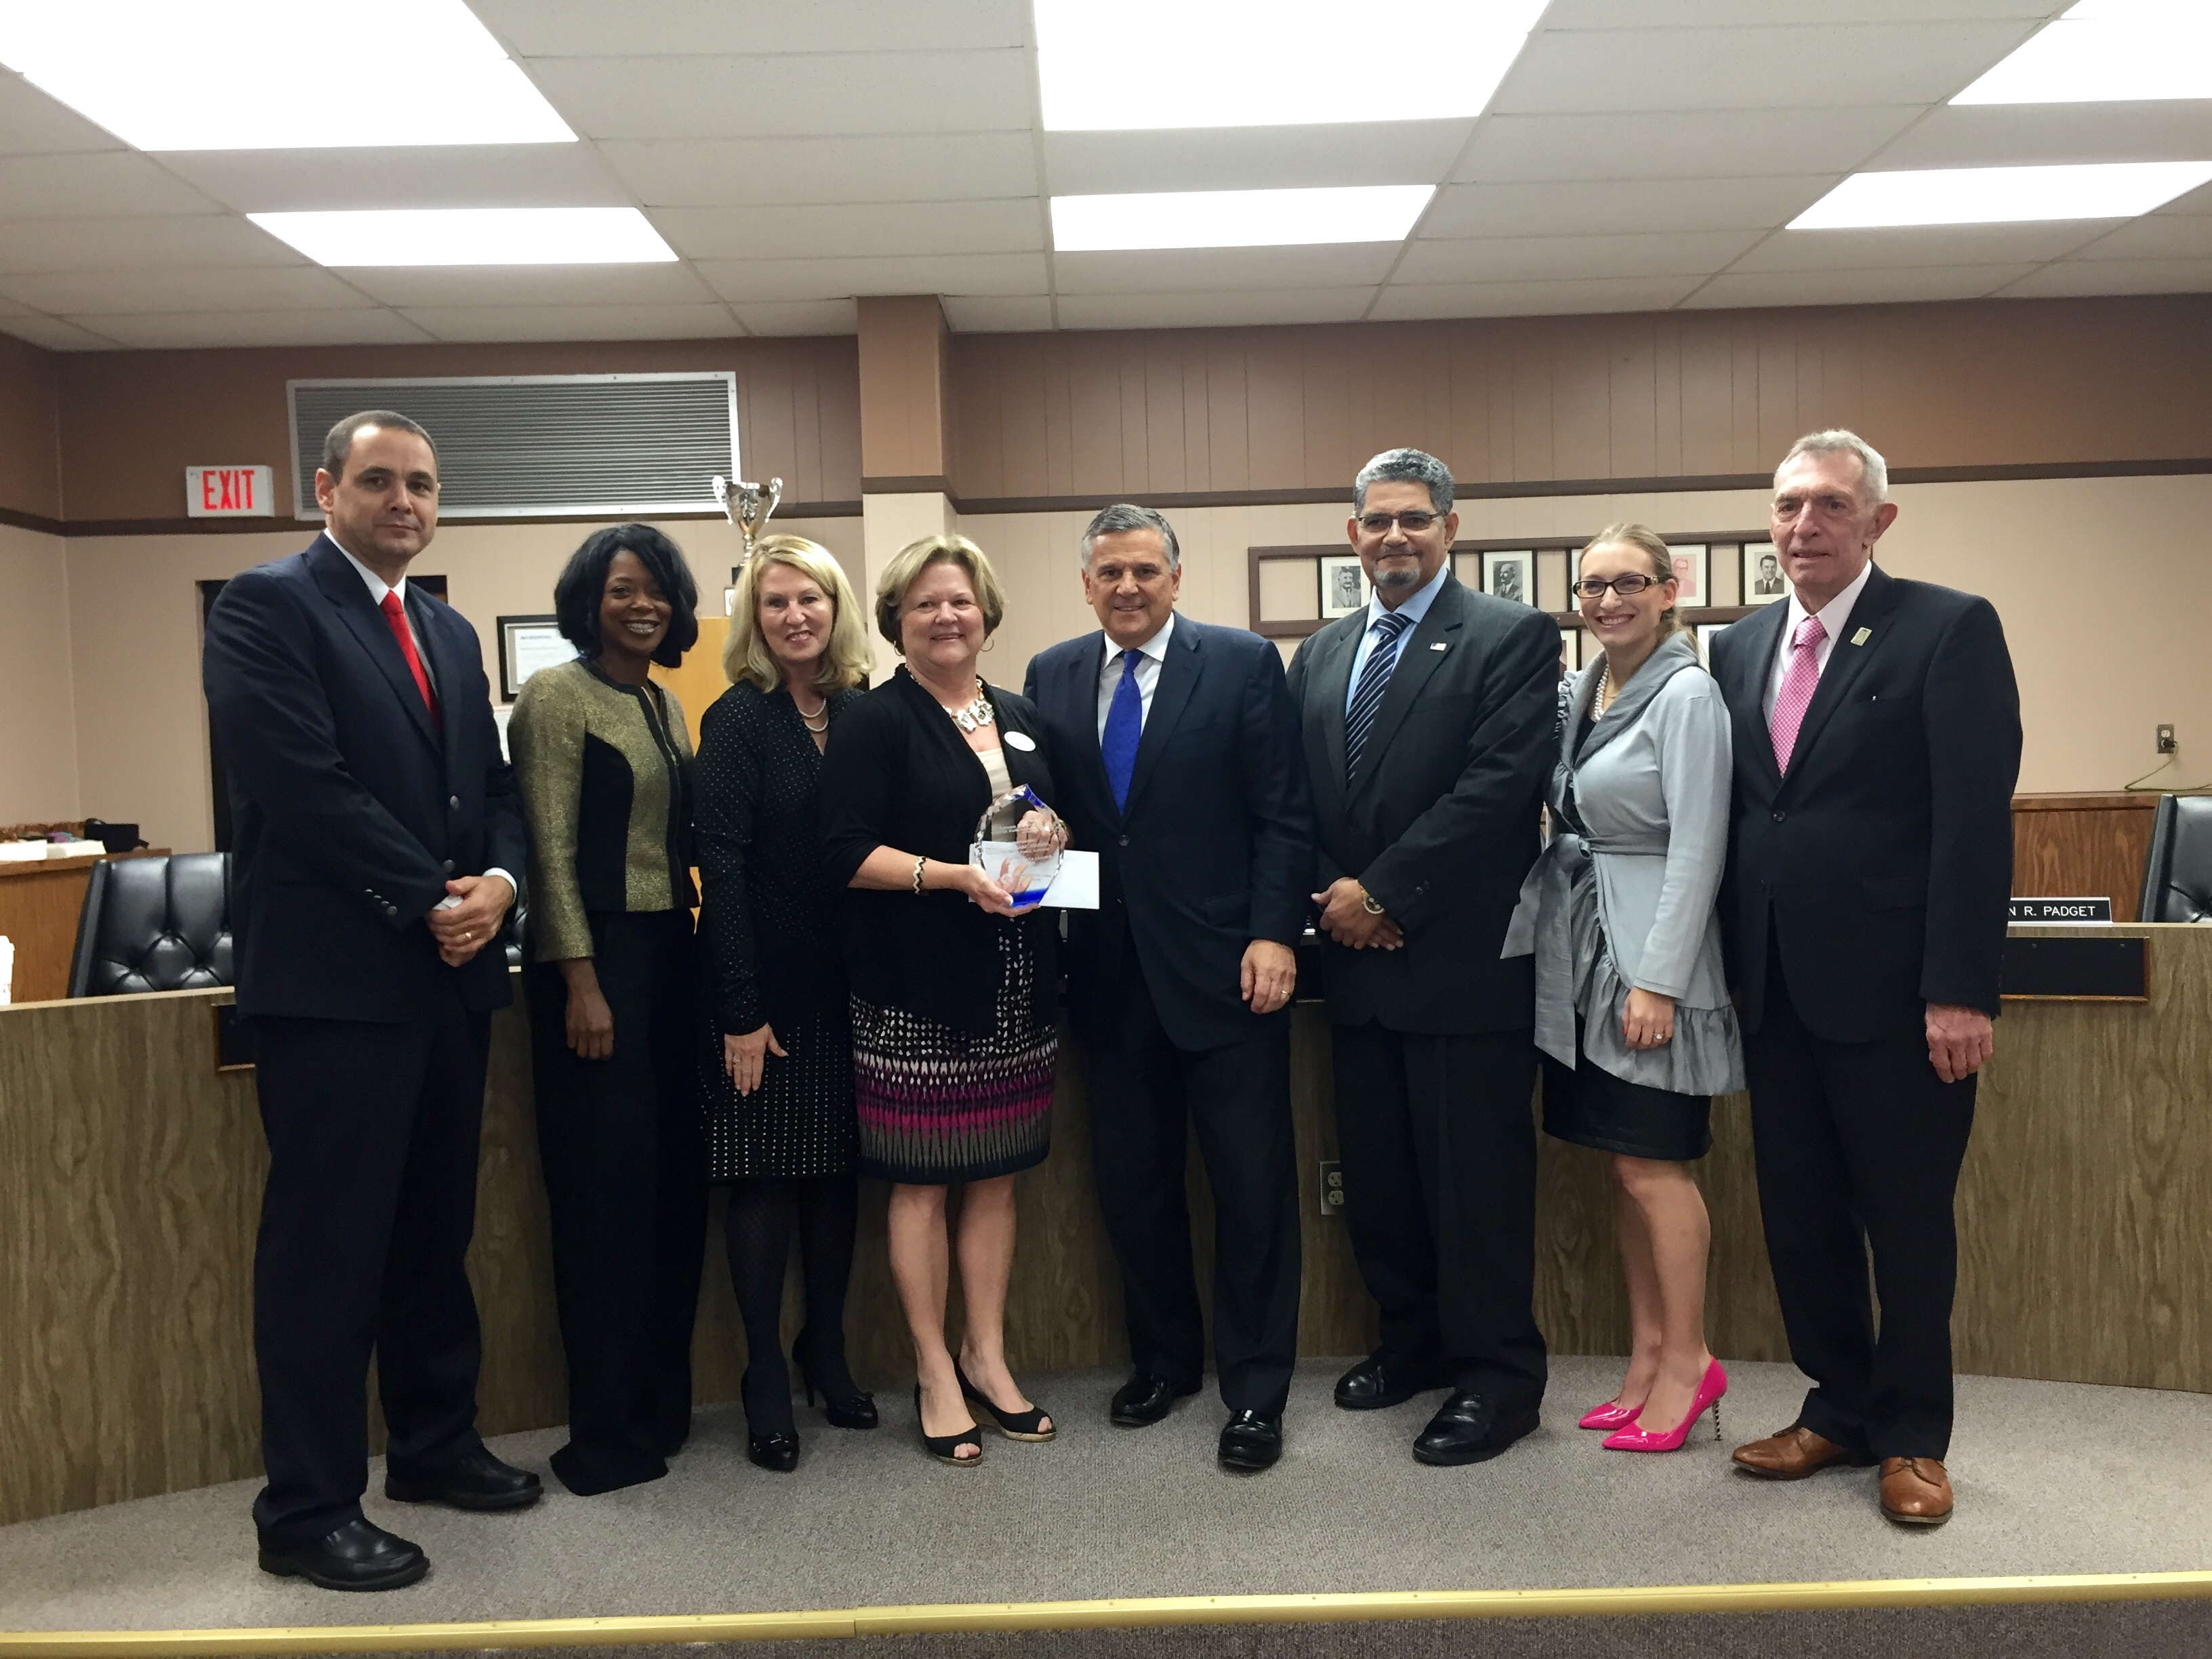 Superintendent Himmel was selected as the 2014 Lavan Dukes District Data Leader of the Year based on the accomplishments Citrus County has made through her leadership over the past 10 years.